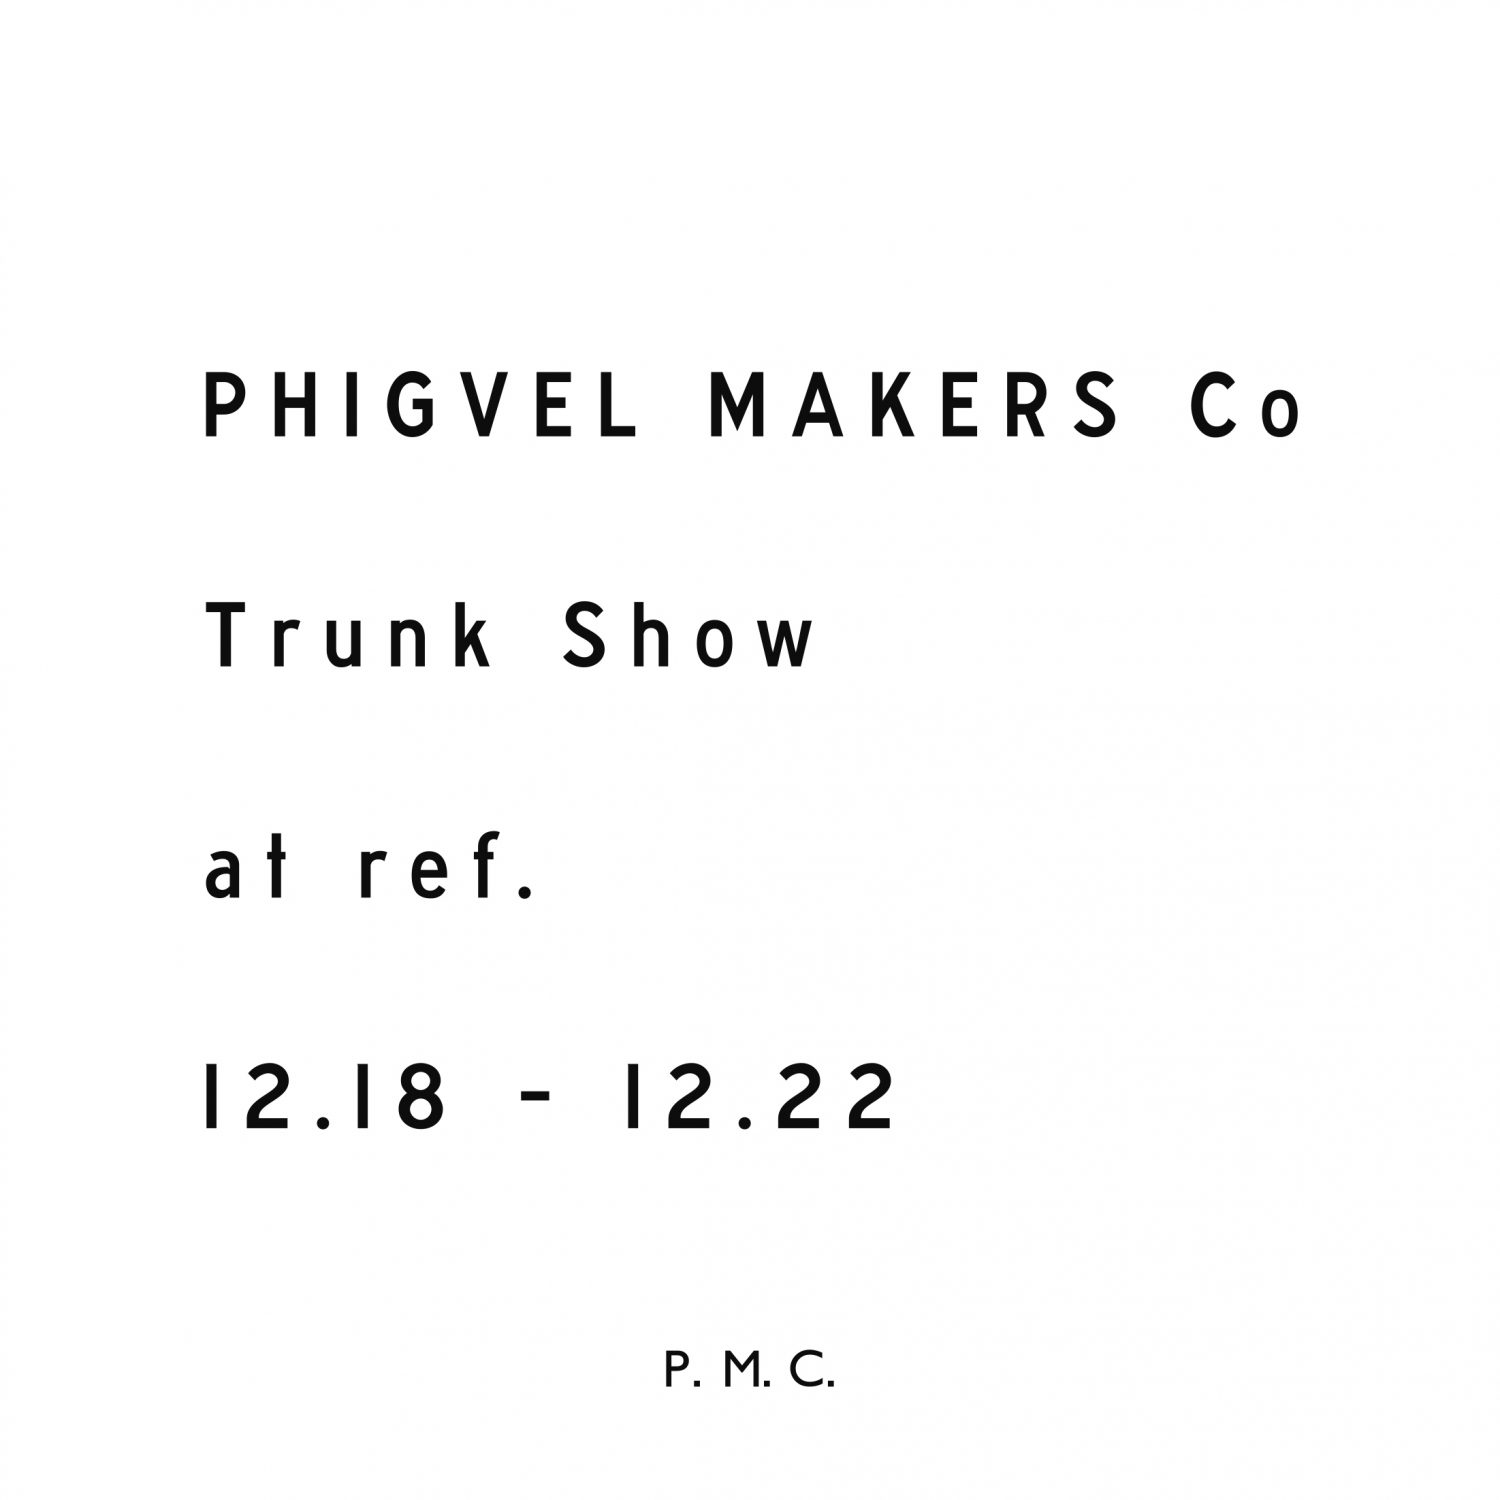 PHIGVEL Trunk Show at ref.